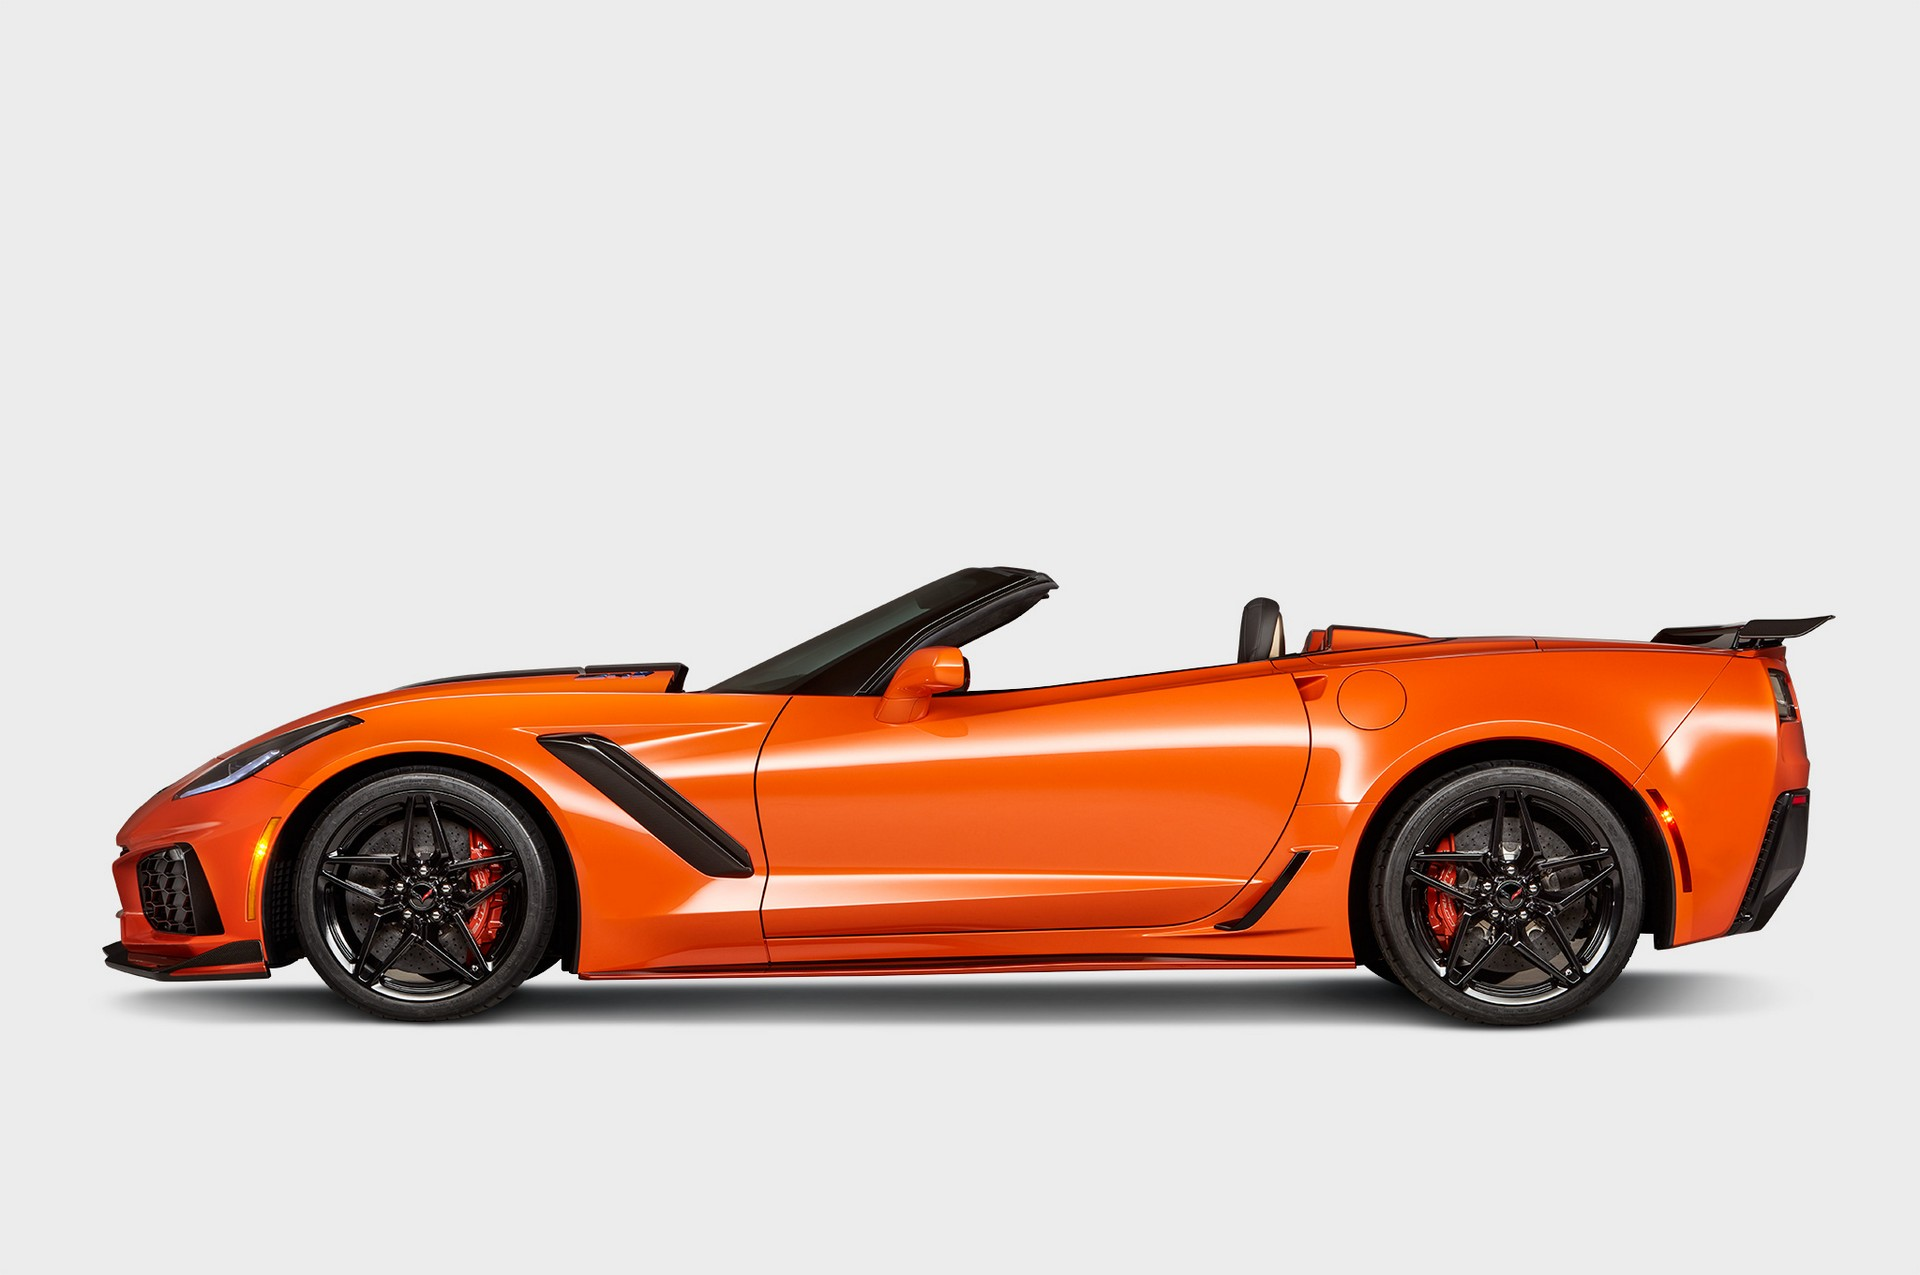 Chevrolet Corvette Zr1 Convertible 2018 006 Red Live